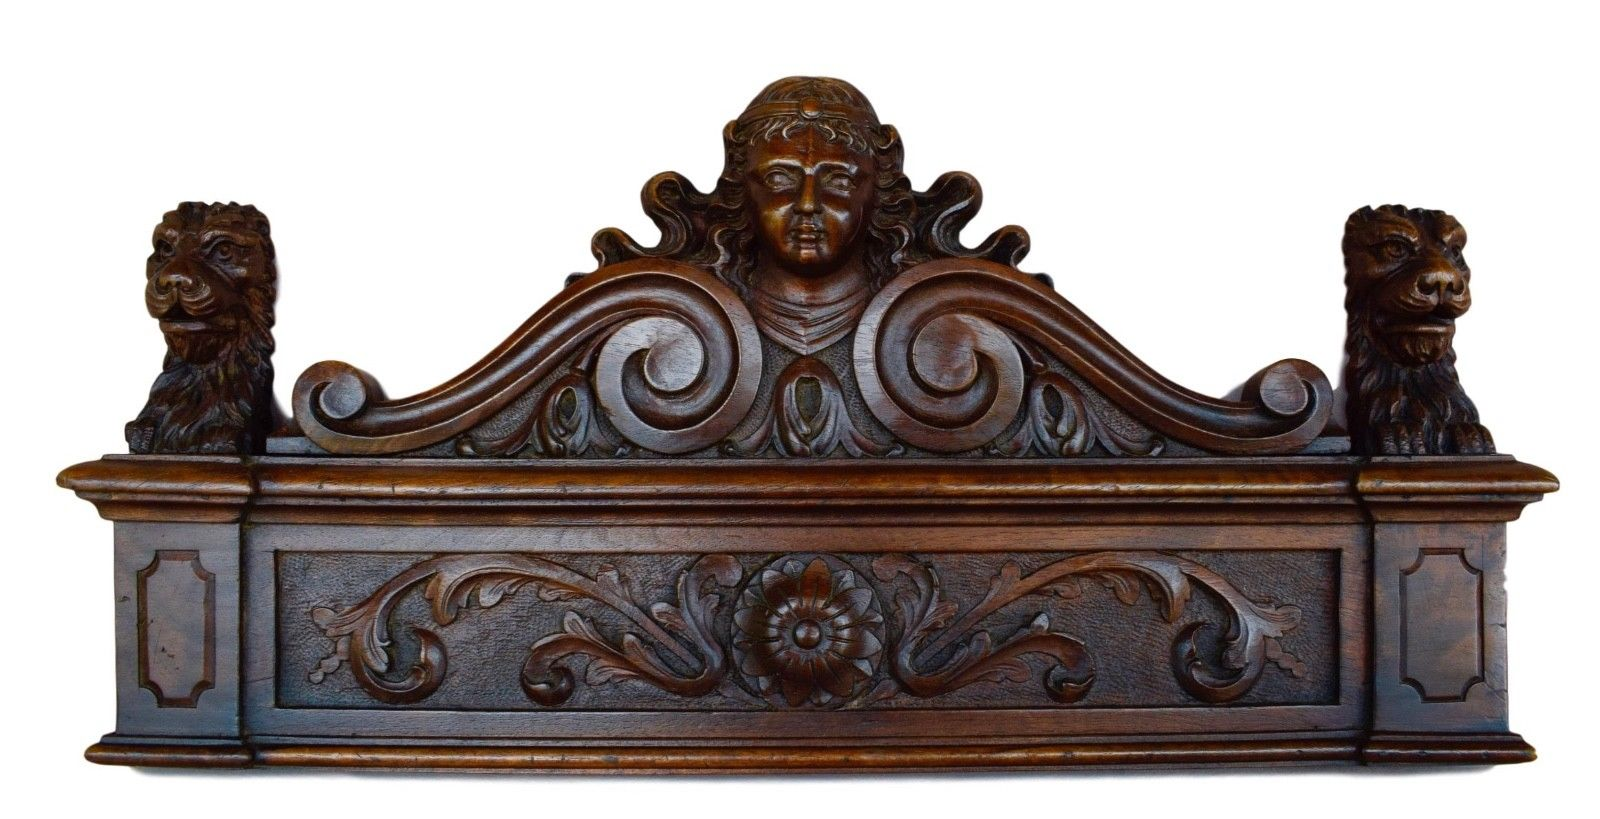 French Antique 19th Hand Carved Walnut Wood Pediment Door Cornice - Lion & Woman Head - Furniture Salvage Wood - Upcycled DIY - Top Door